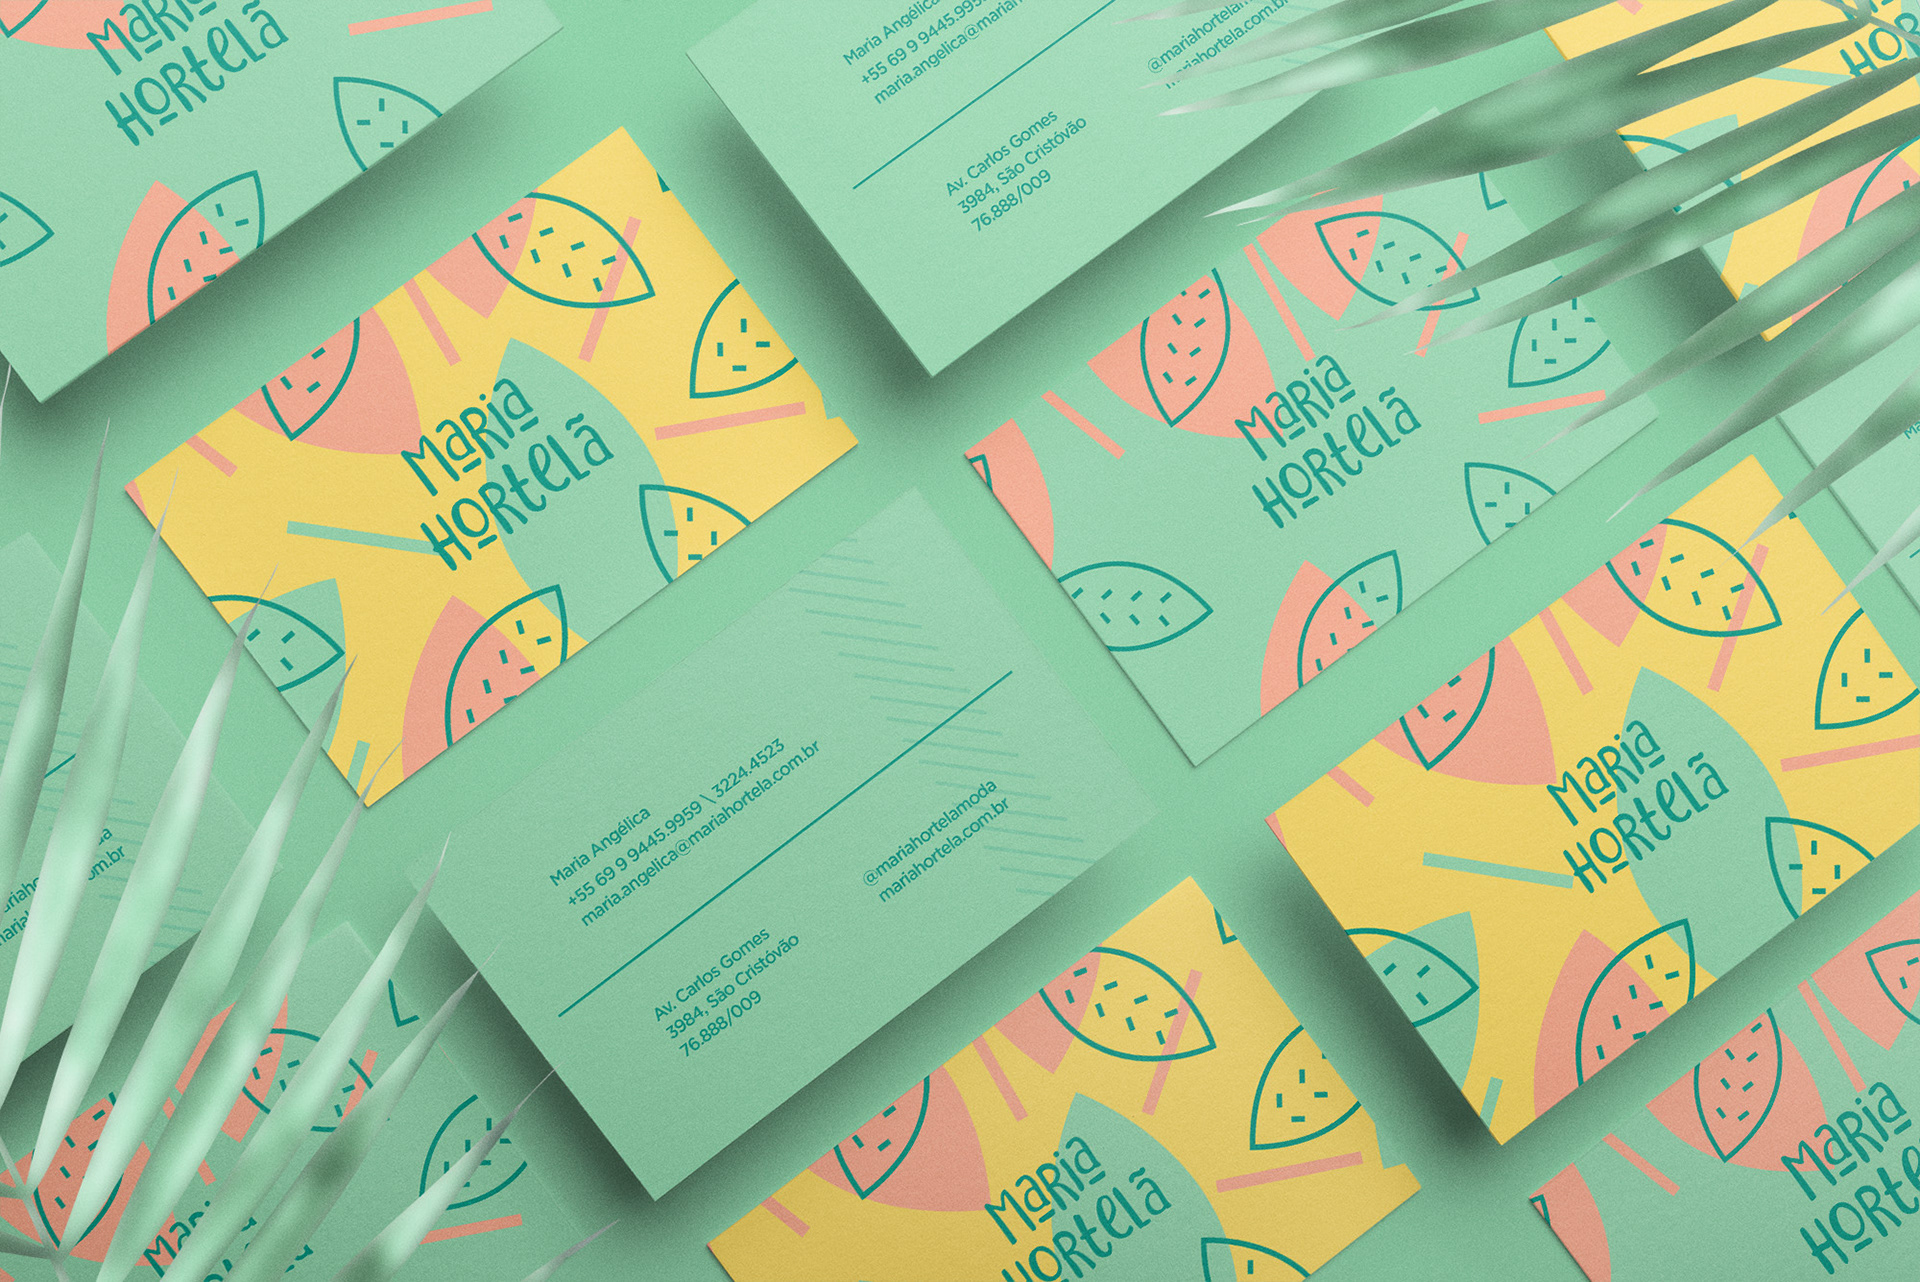 Maria Hortelã business cards